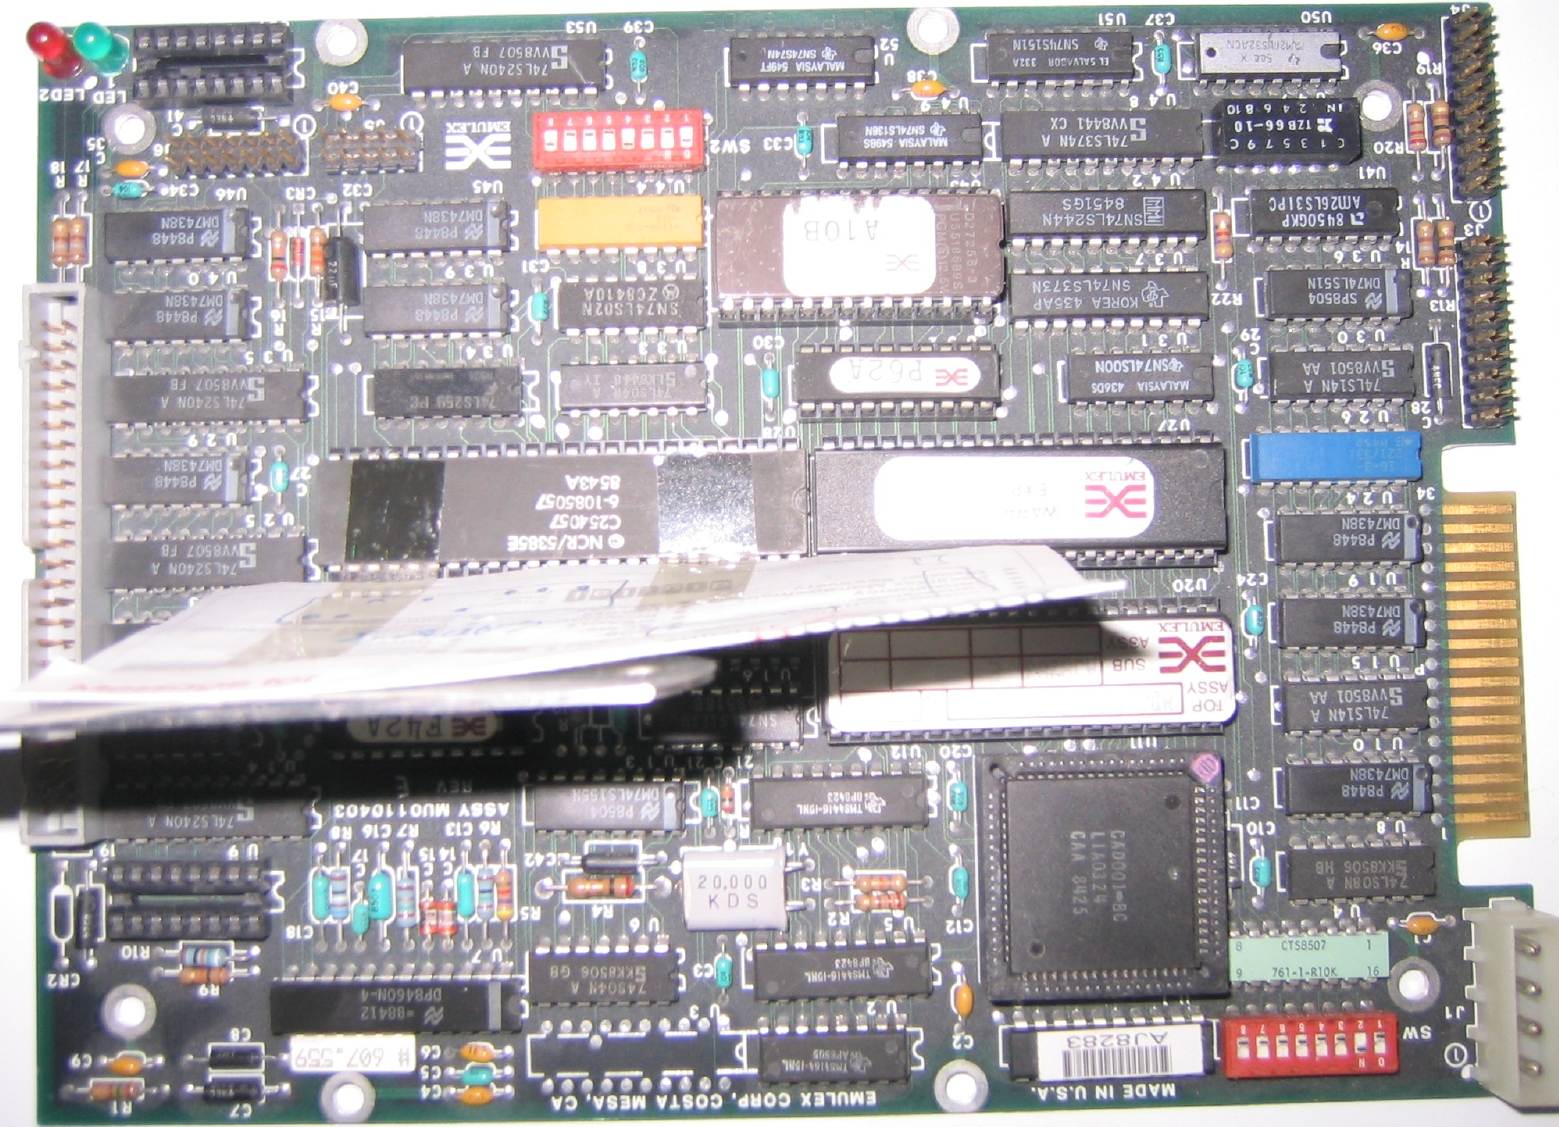 scsi_st506_adapter_switch_red.jpg